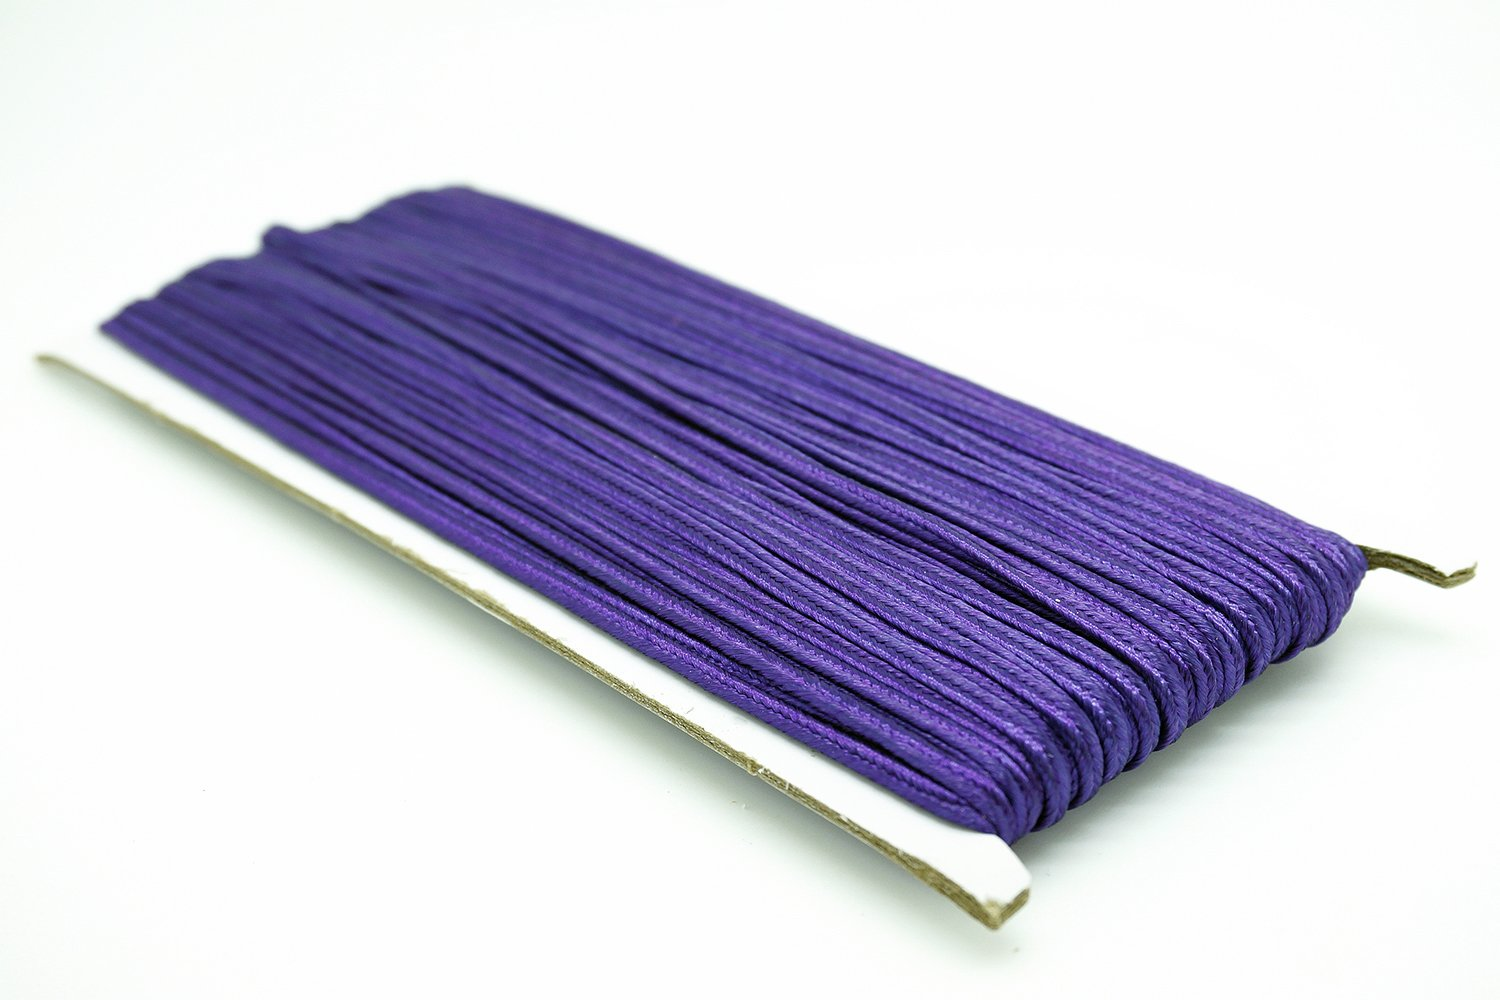 PURPLE 3mm Polyester Soutache Braid Cord String Beading Sewing Quilting Trimming - 30 Yards